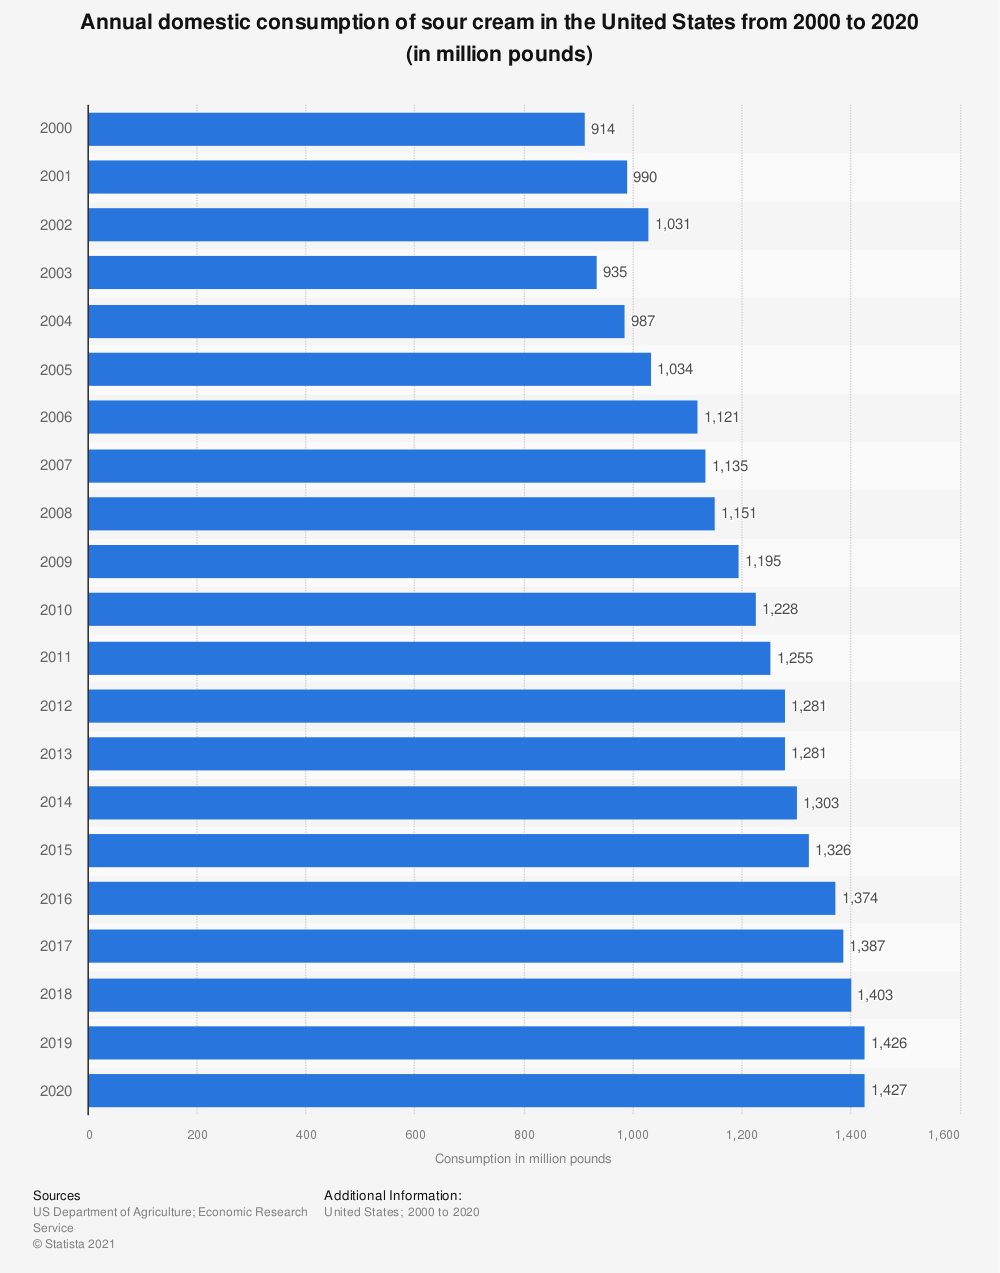 Statistic: Annual domestic consumption of sour cream in the United States from 2000 to 2018 (in million pounds) | Statista